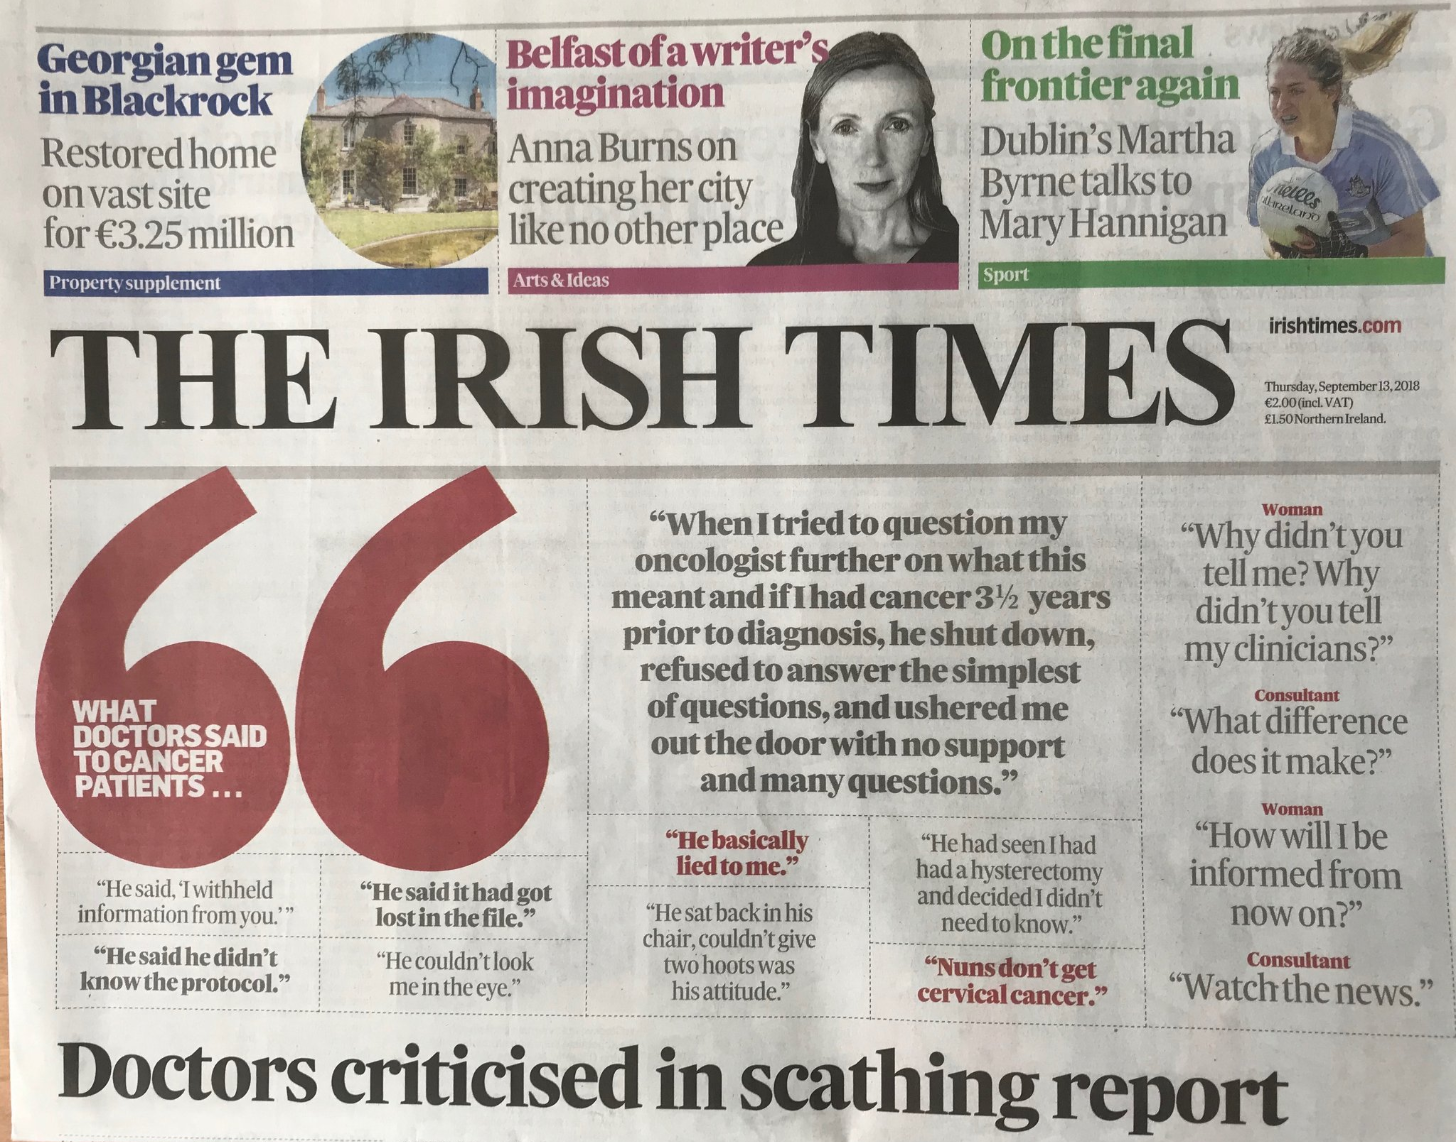 Irish Times frontcover doctor quotes